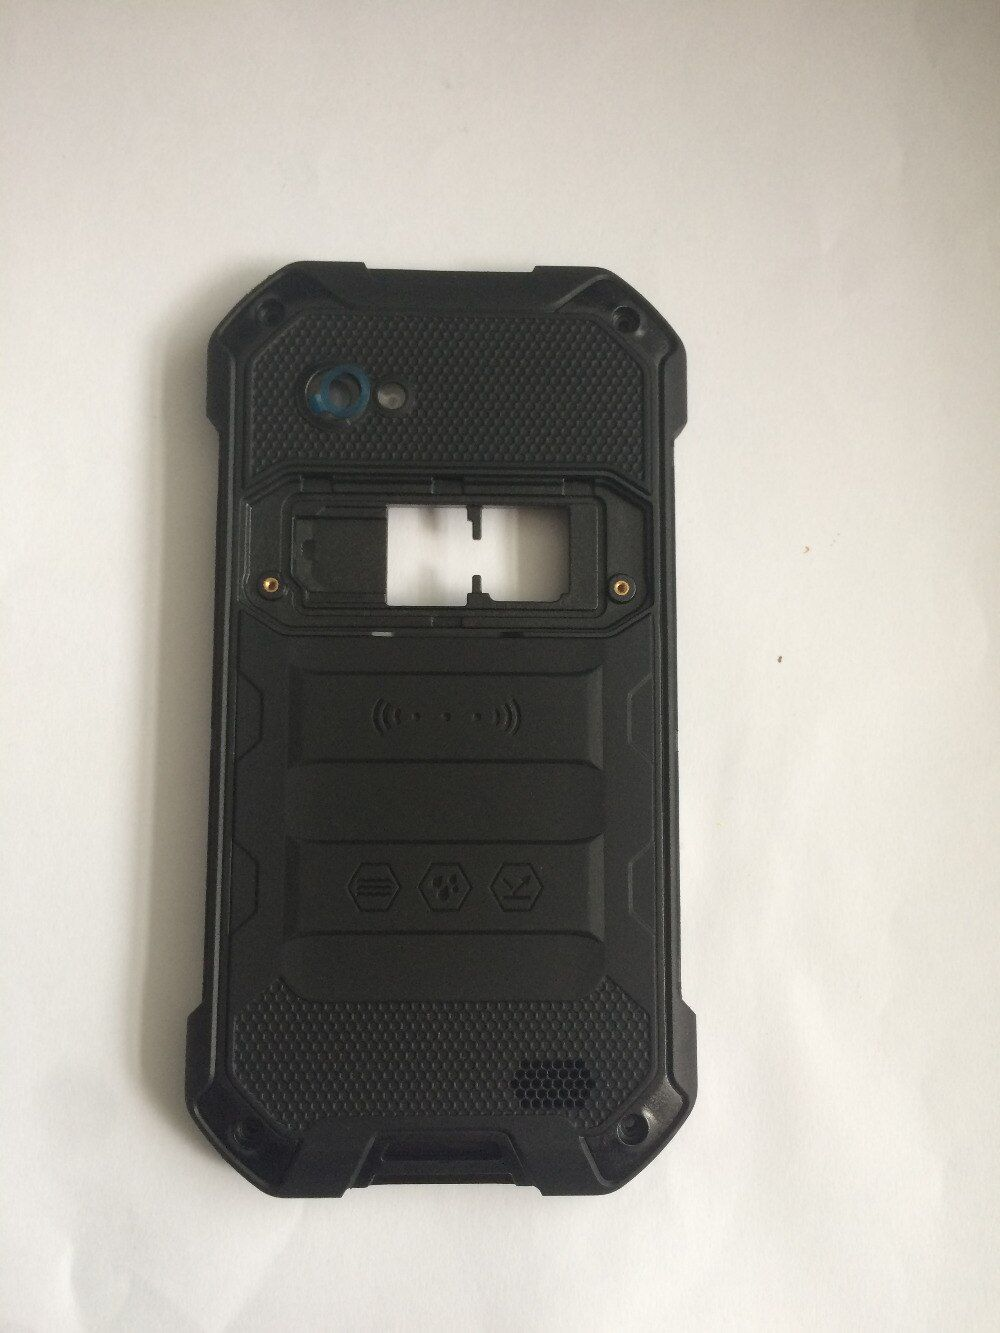 New Battery Cover+Loud Speaker for Blackview BV6000 BV6000S 1280x720 Free Shipping+tracking number